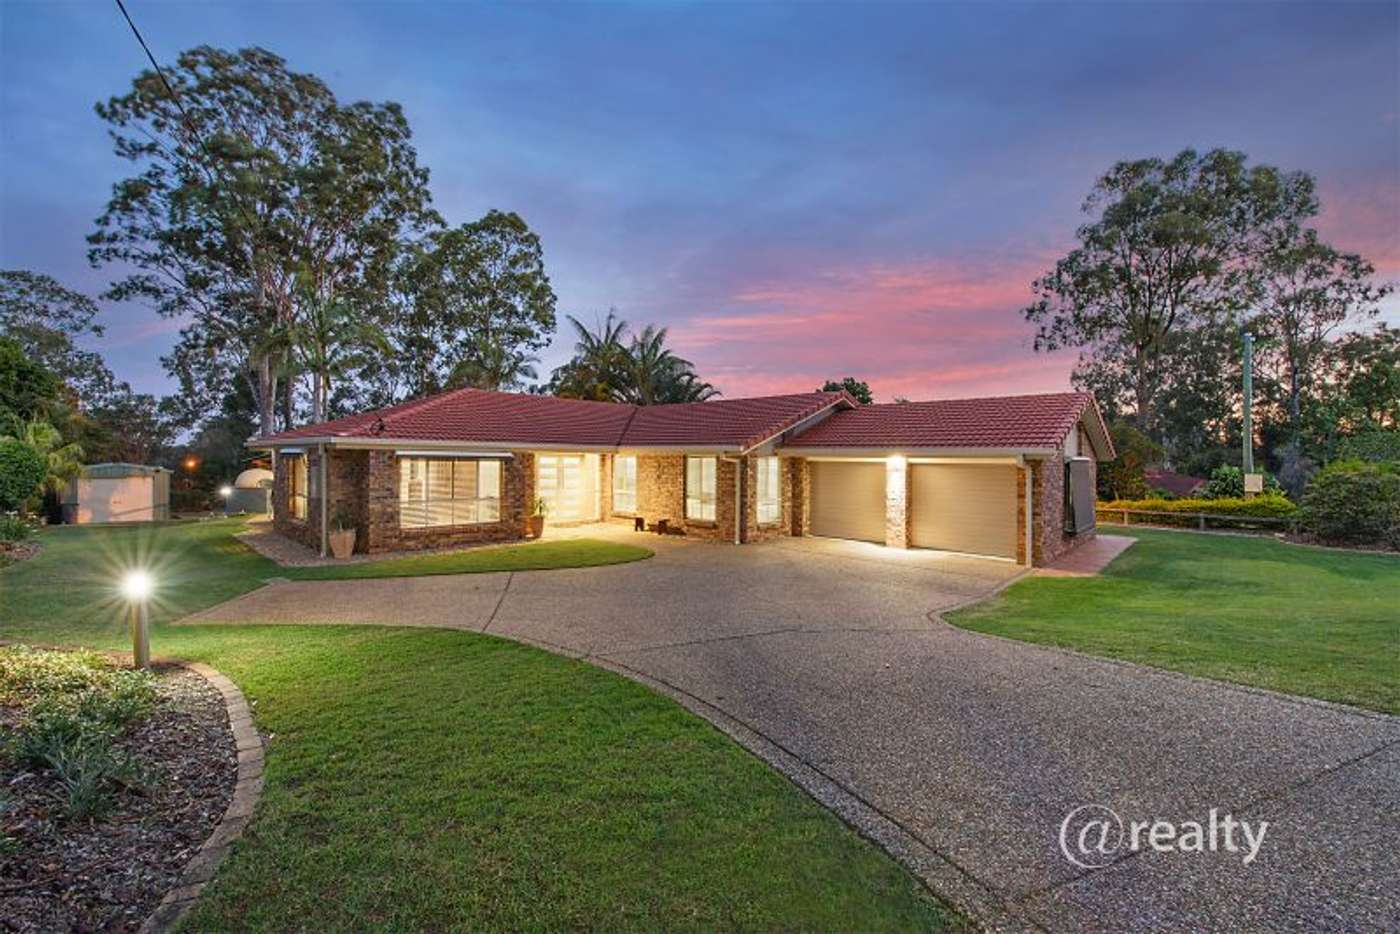 Main view of Homely house listing, 15 Porsche Court, Joyner QLD 4500